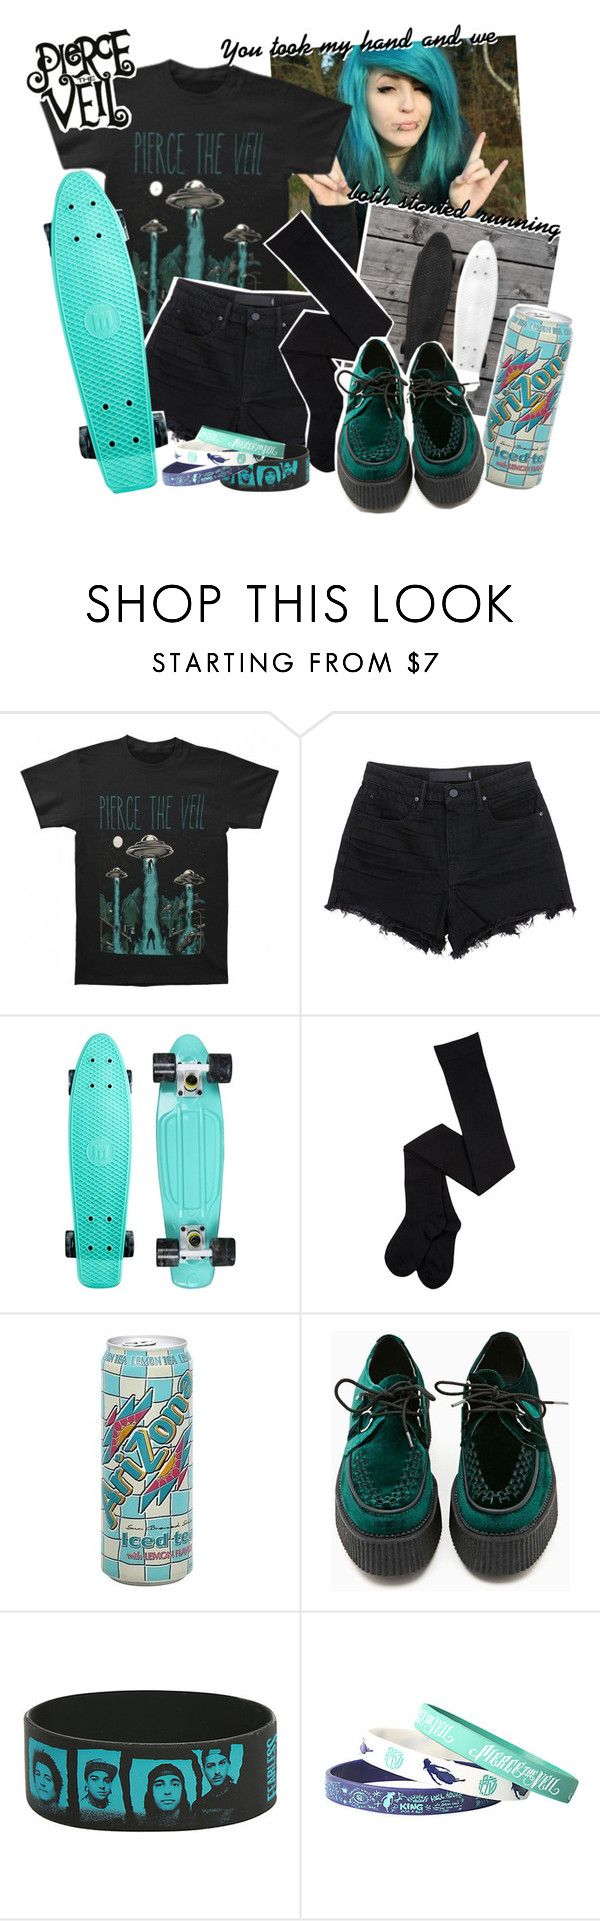 """Circles, pierce the veil"" by zombielover100 ❤ liked on Polyvore featuring Alexander Wang and T.U.K."